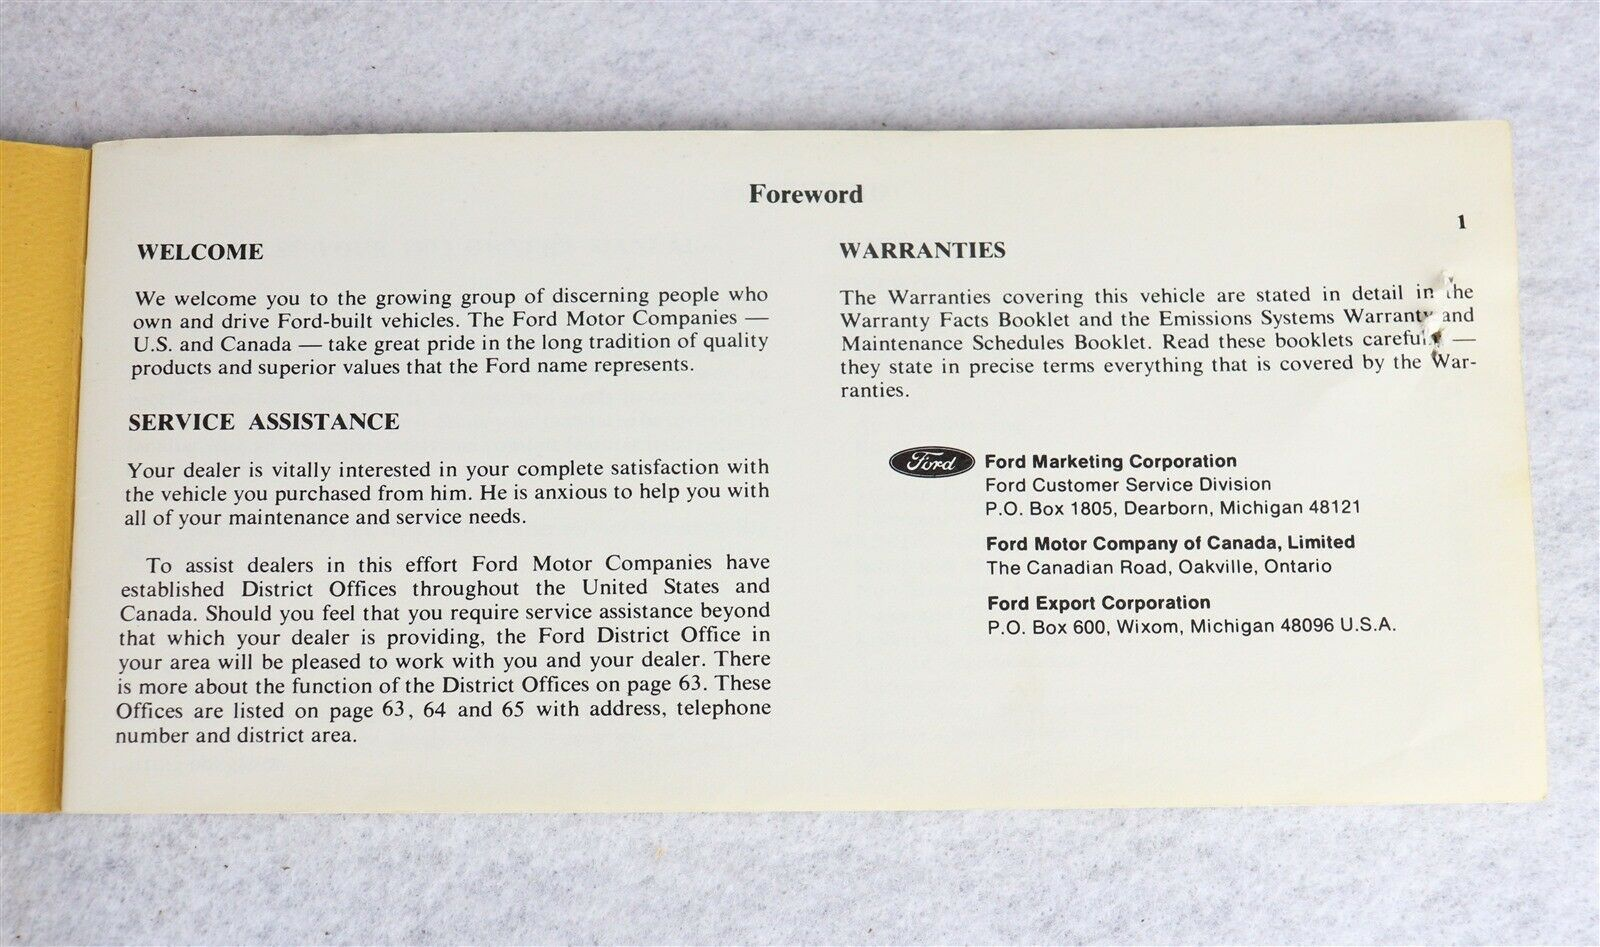 1973 Mercury Comet Owner's Manual